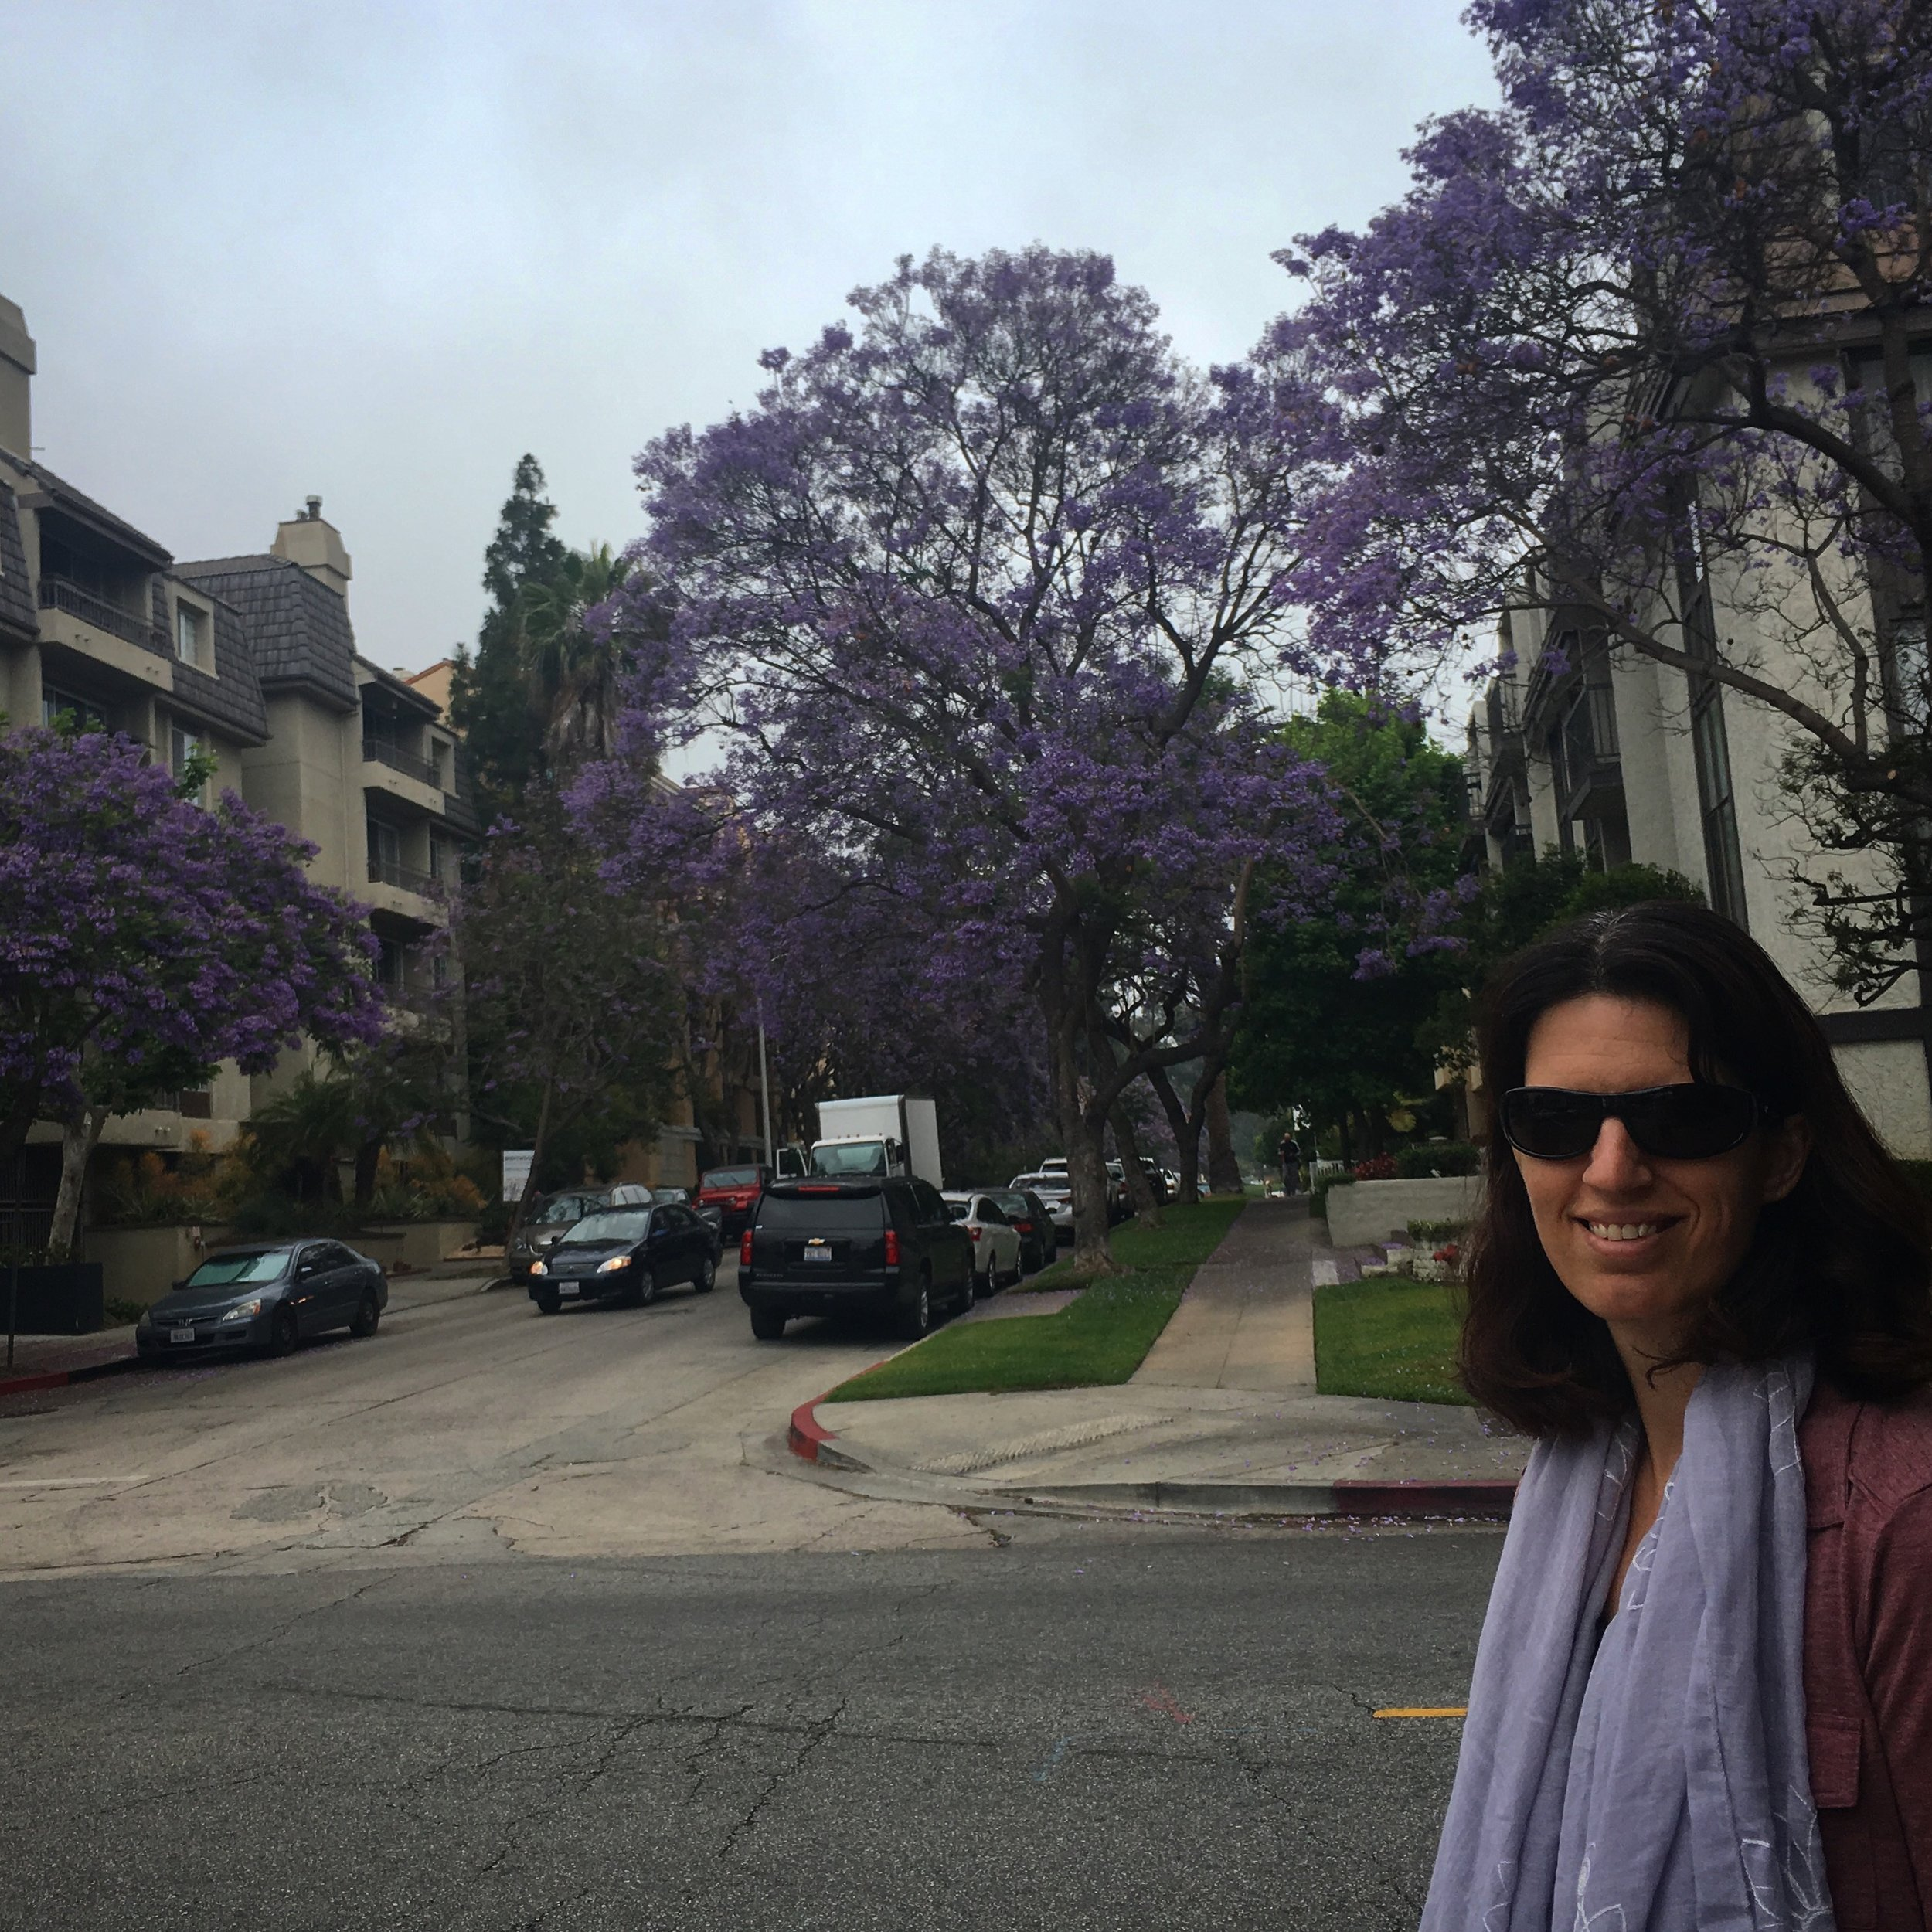 First walk and the Jacaranda trees in bloom!